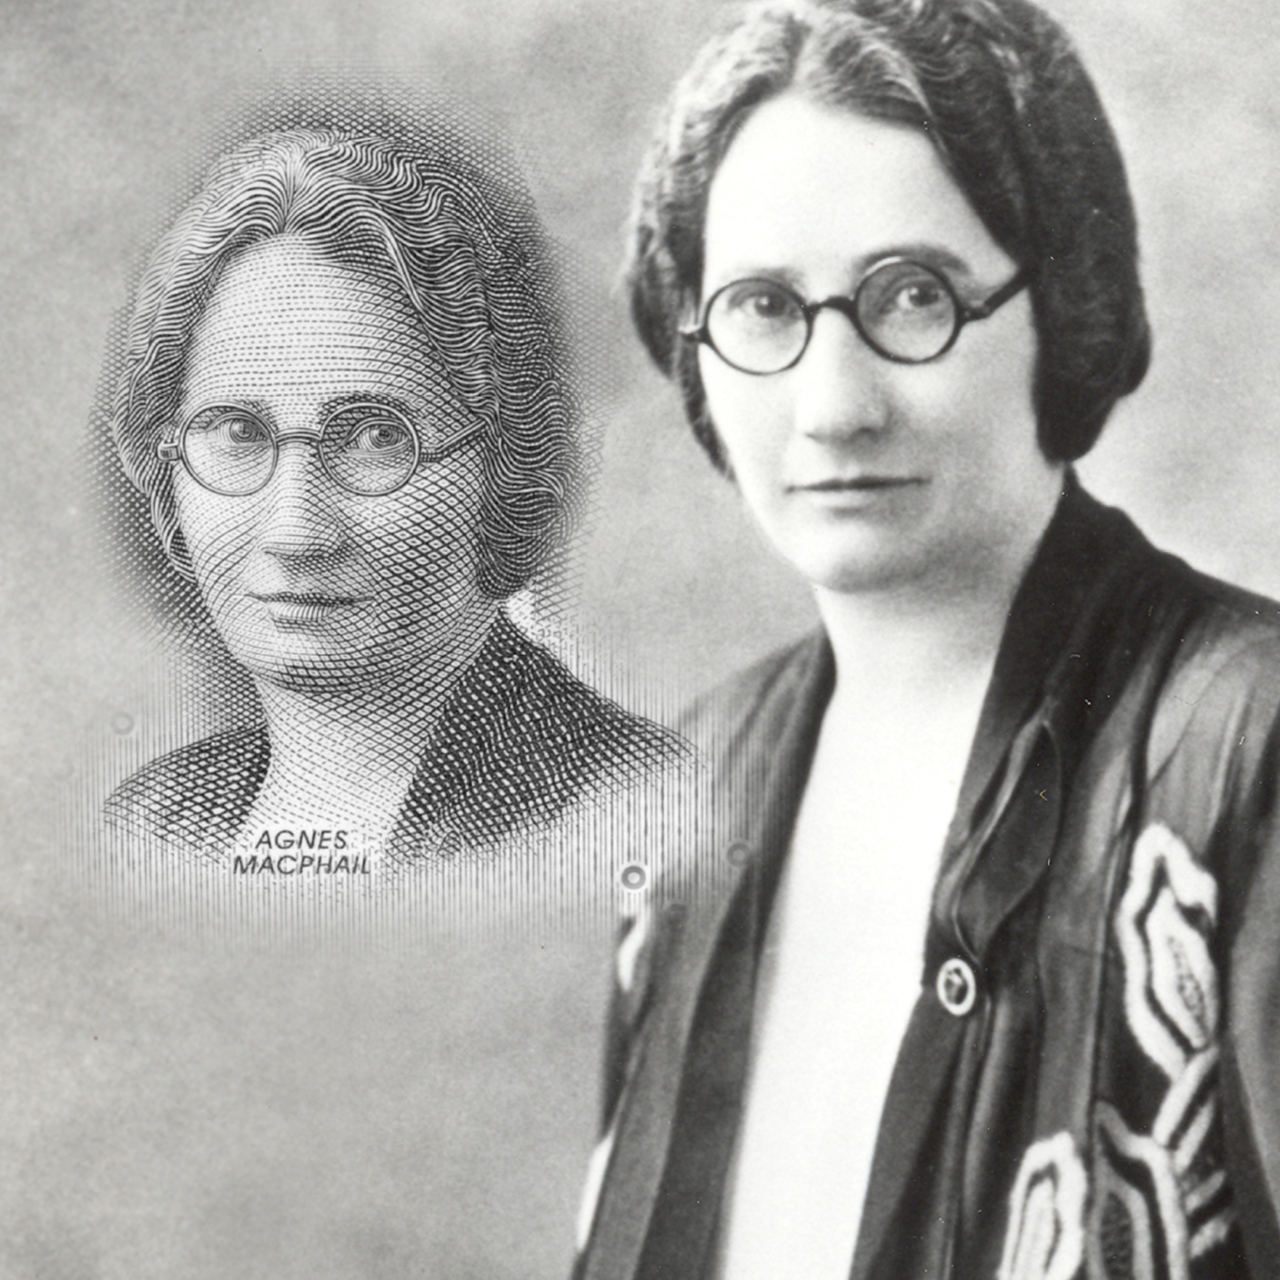 photo d'époque d'Agnes Macphail